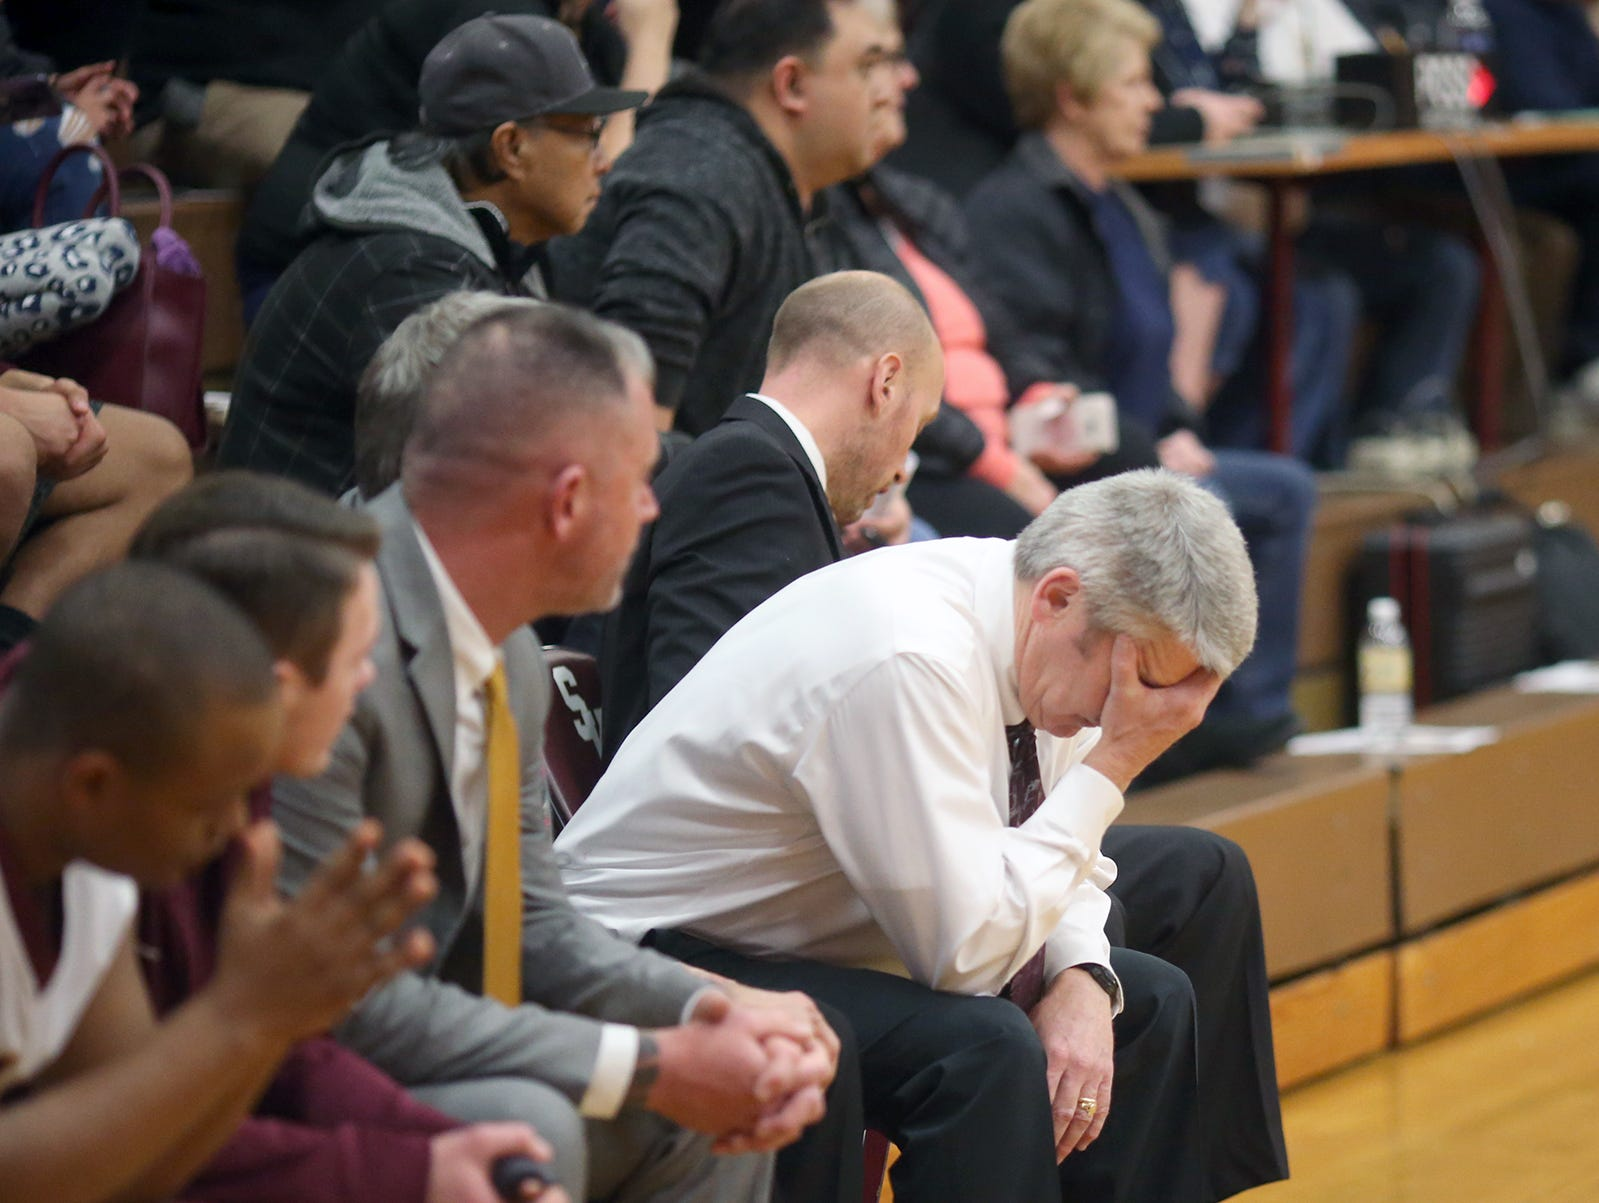 South Kitsap High School varsity head basketball coach John Callaghan won his 300th game against Bellarmine at South Kitsap on Thursday, January 17, 2019. Callaghan gives a kiss to his wife Denise at mid-court after the game. Coach Callaghan reacts to a late game turnover.